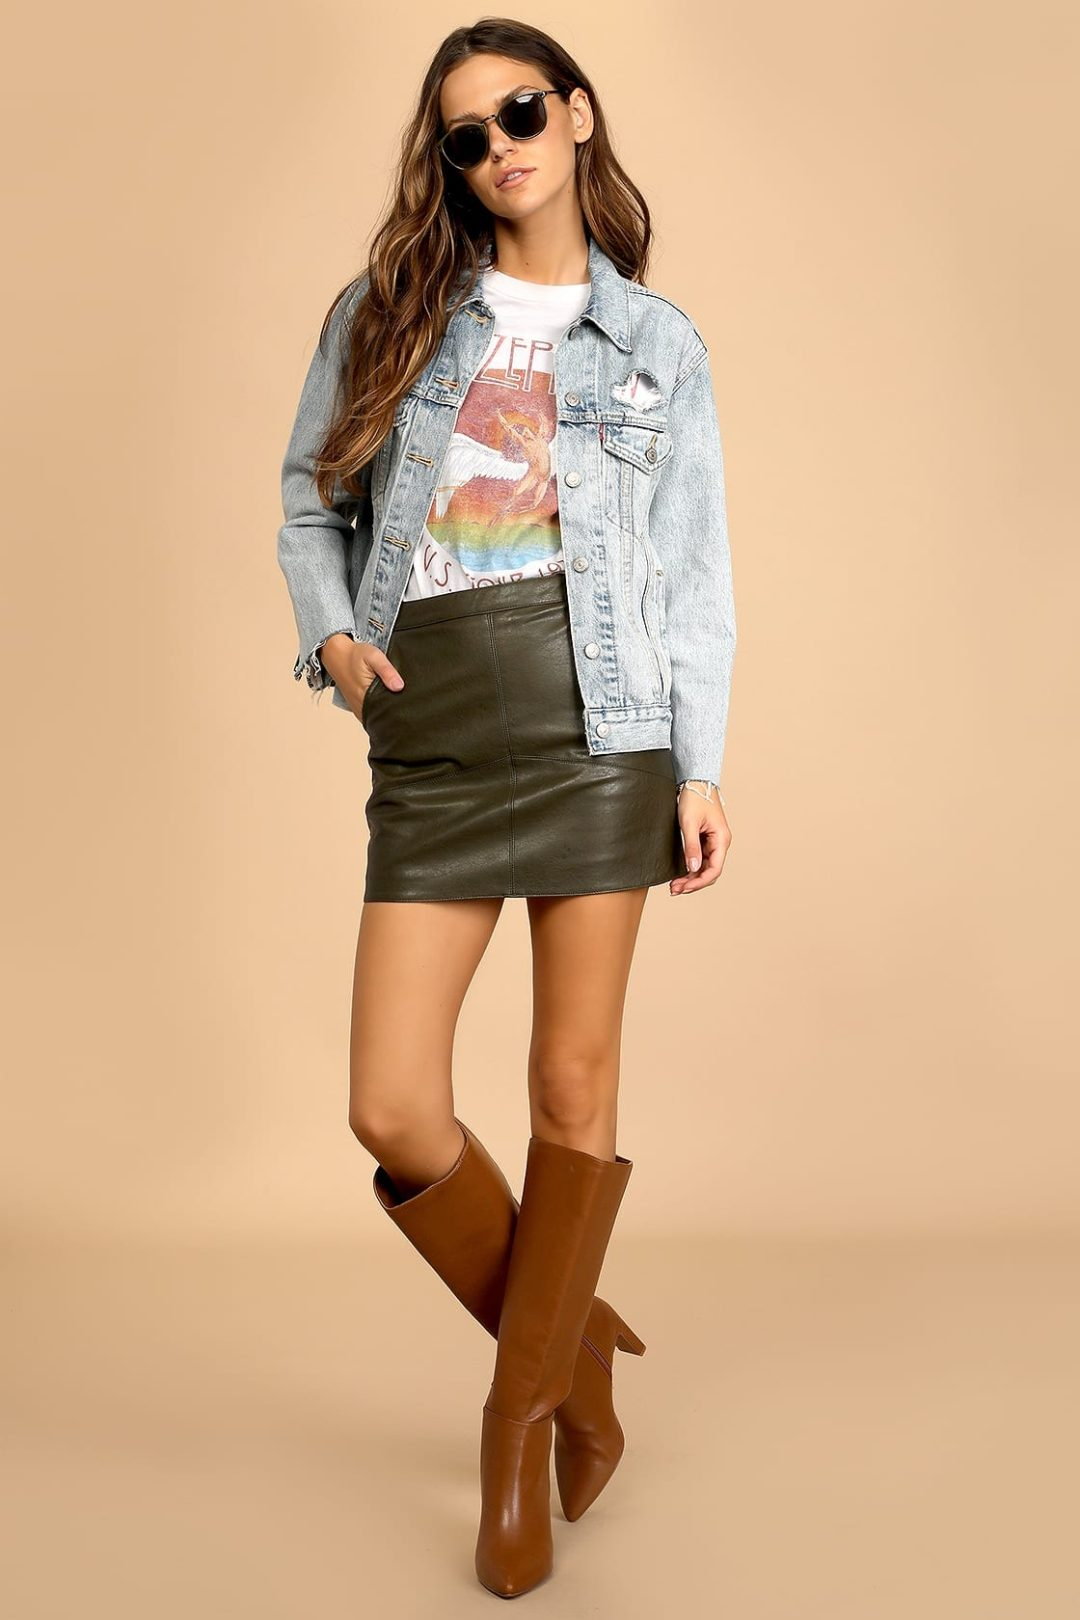 Graphic tee with leather skirt and denim jacket